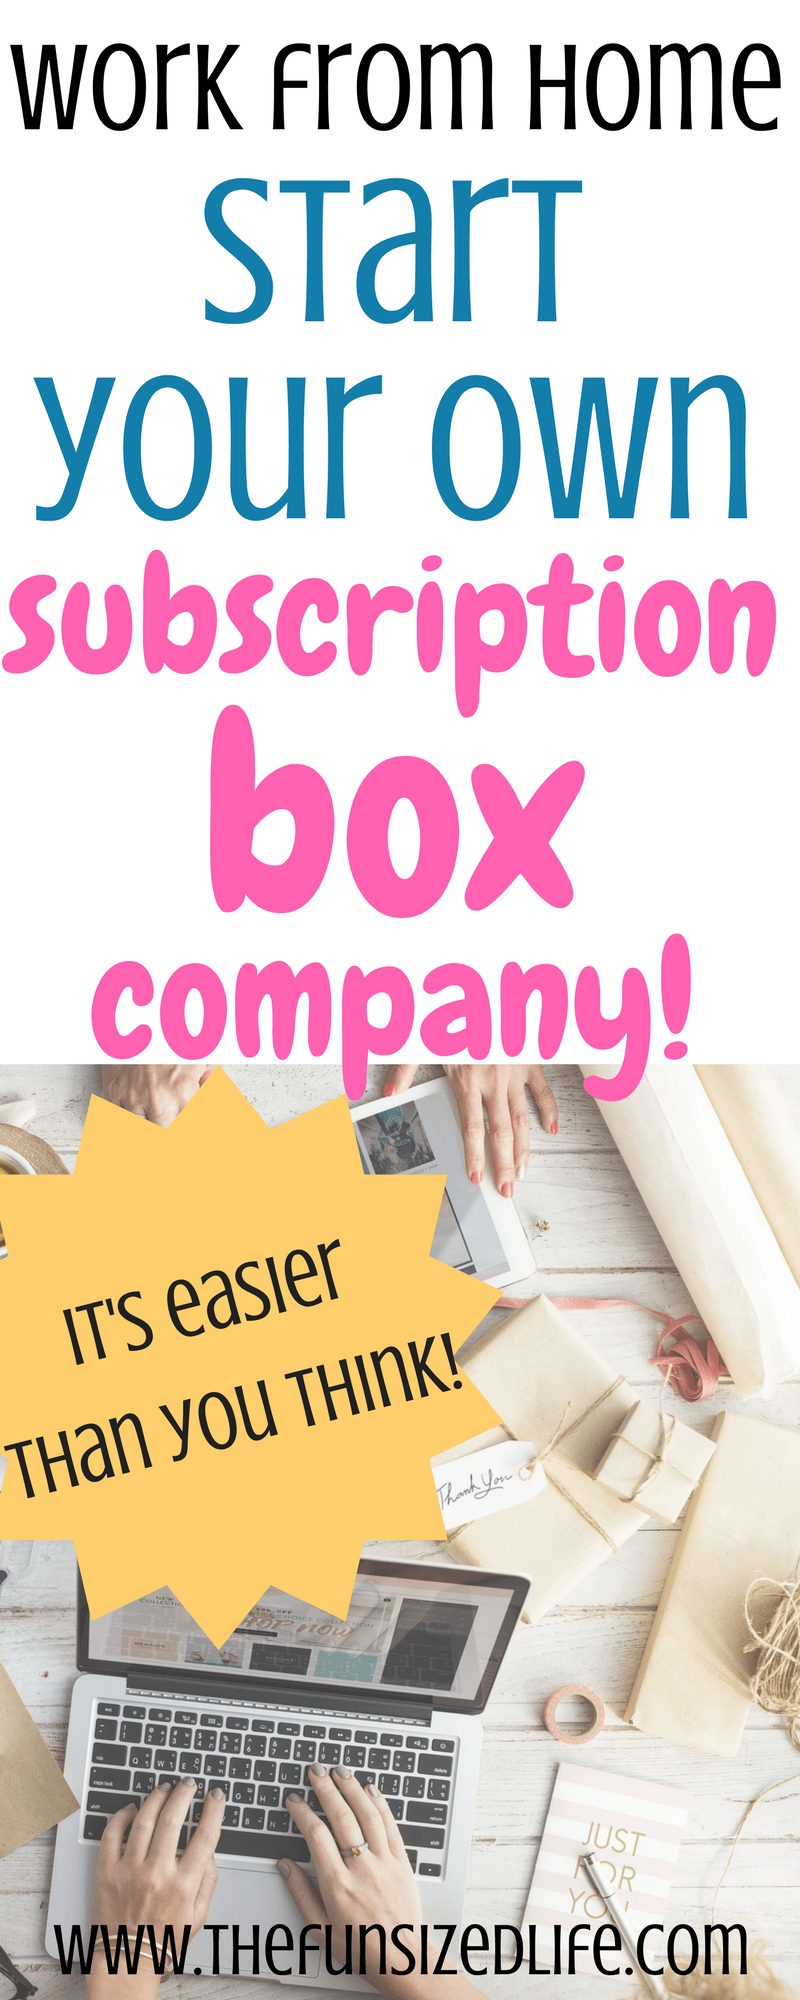 You can start your own subscription box and make serious money! #subscriptionbox #entrepreneur